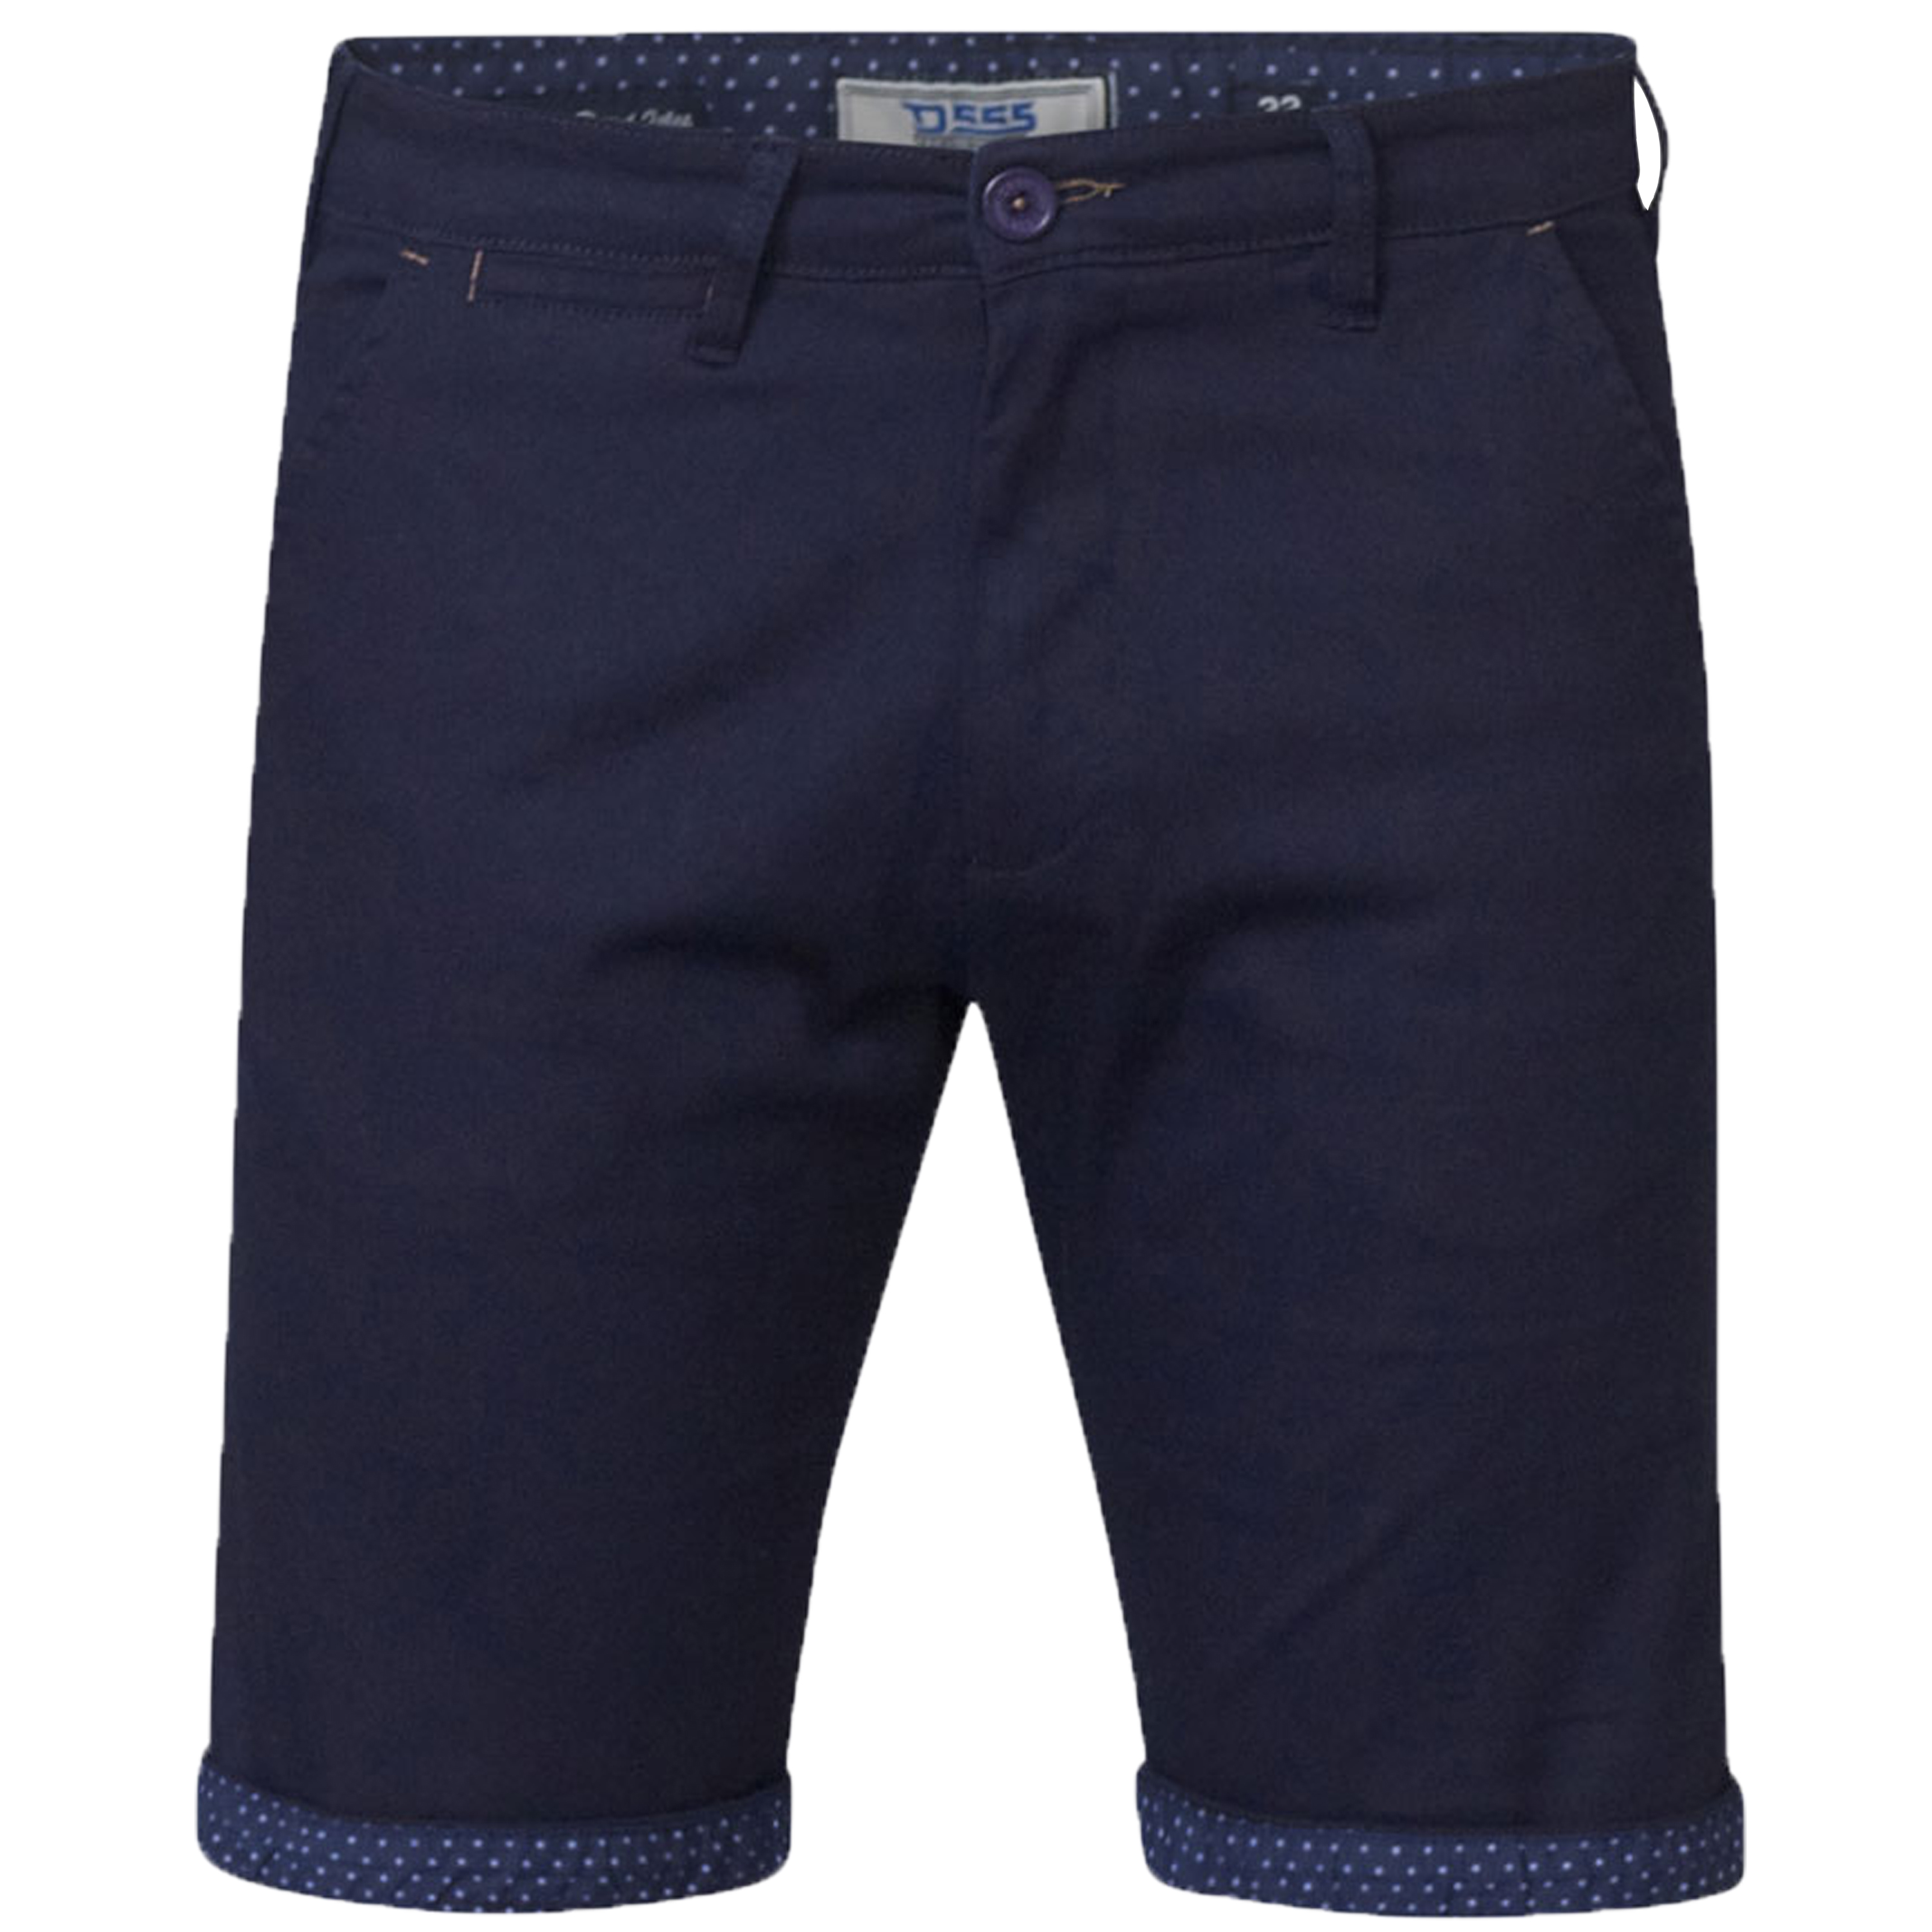 Mens-Chino-Shorts-D555-Duke-Big-King-Size-Roll-Up-Knee-Length-Polka-Pattern-New thumbnail 2